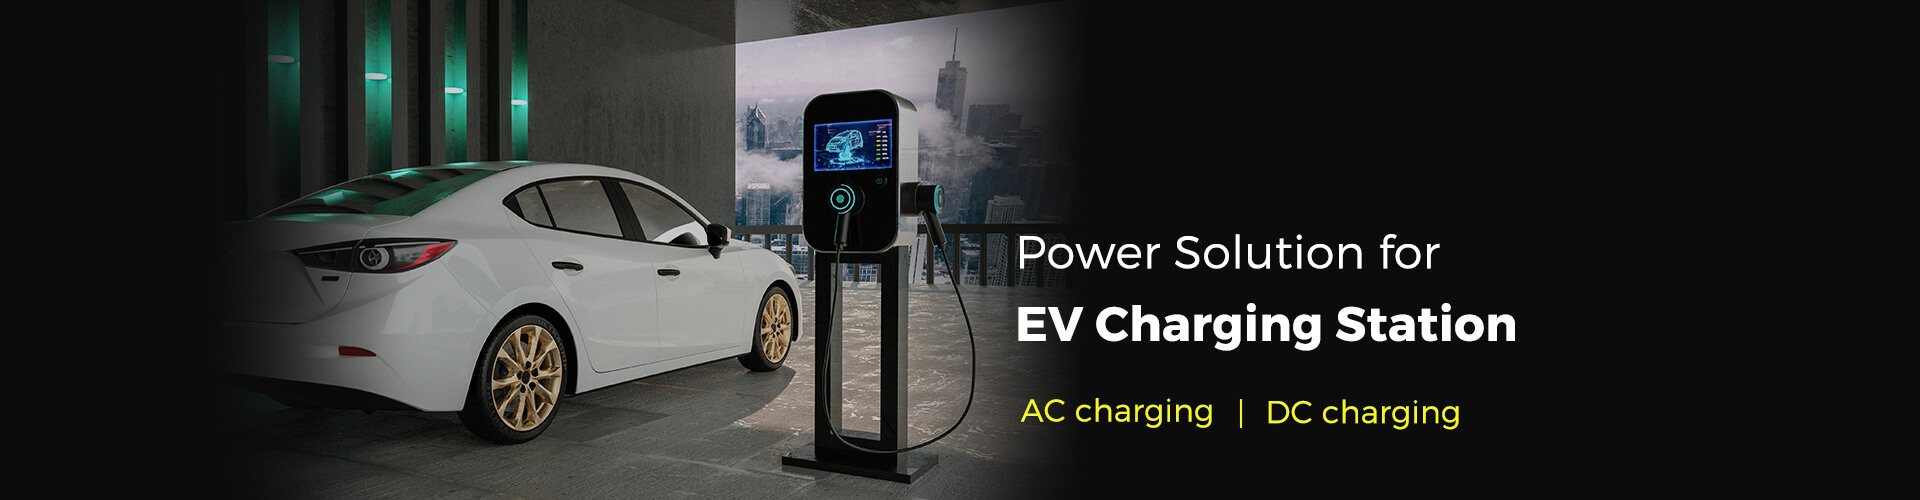 Power Solution for EV Charging Station -- DC charging | AC charging